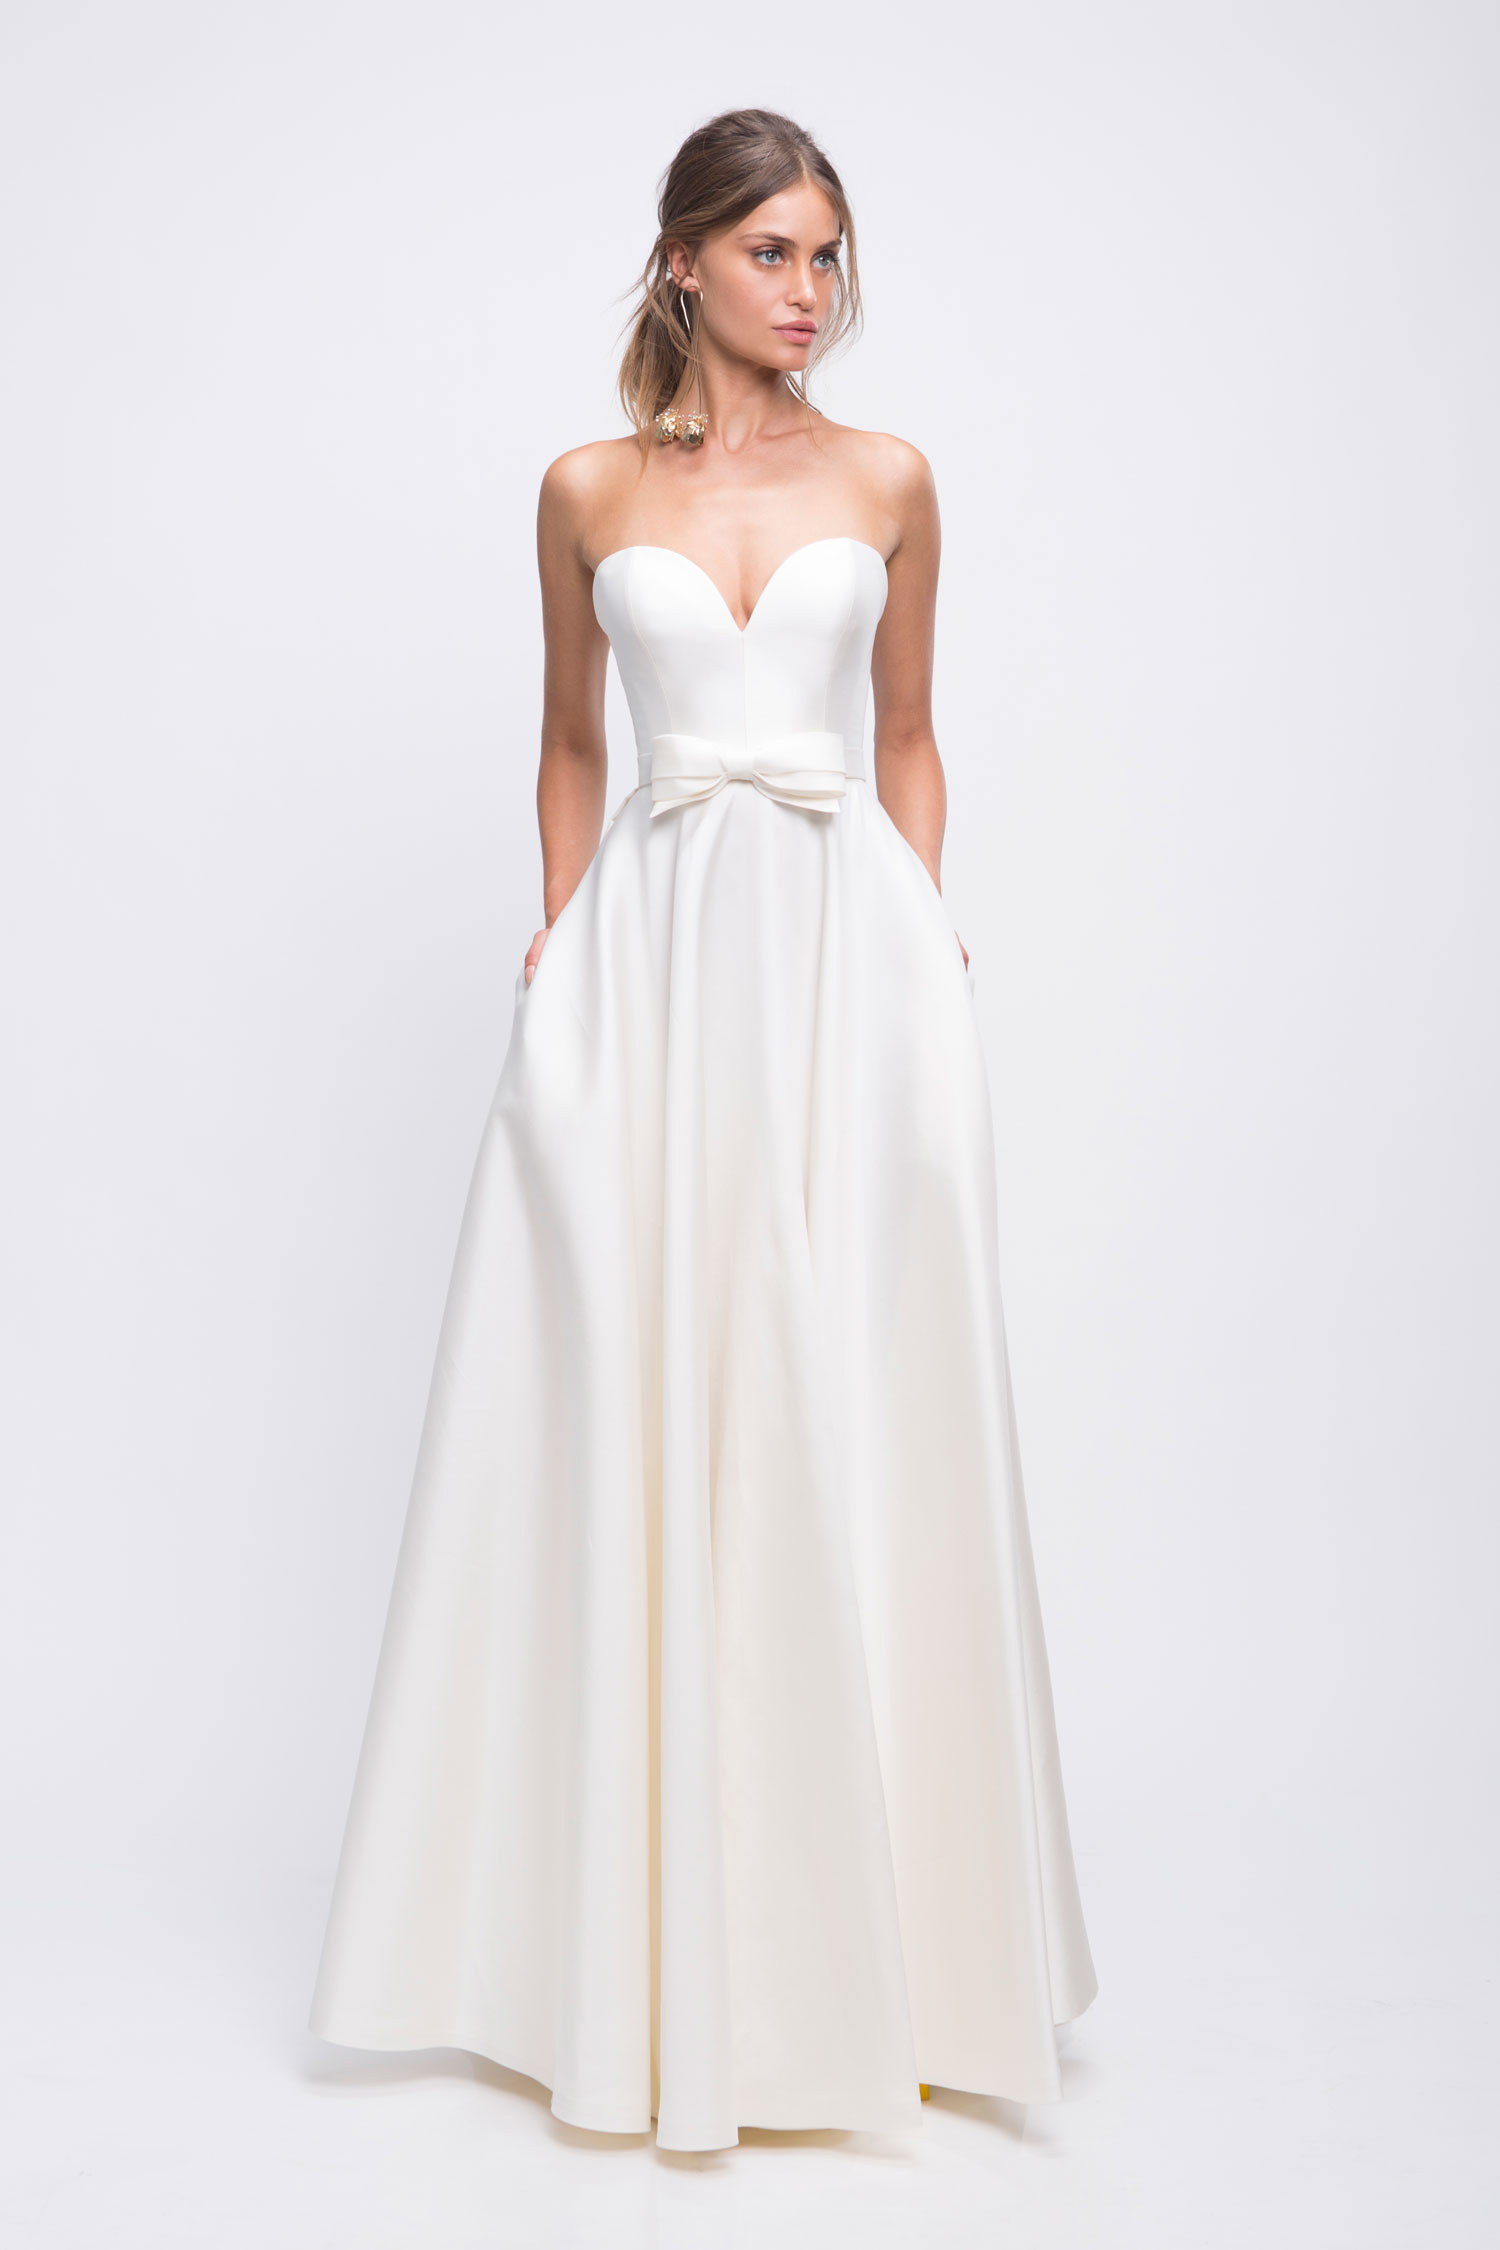 Lihi Hod strapless wedding dress with sweetheart neckline bow in front Audrey bridal gown